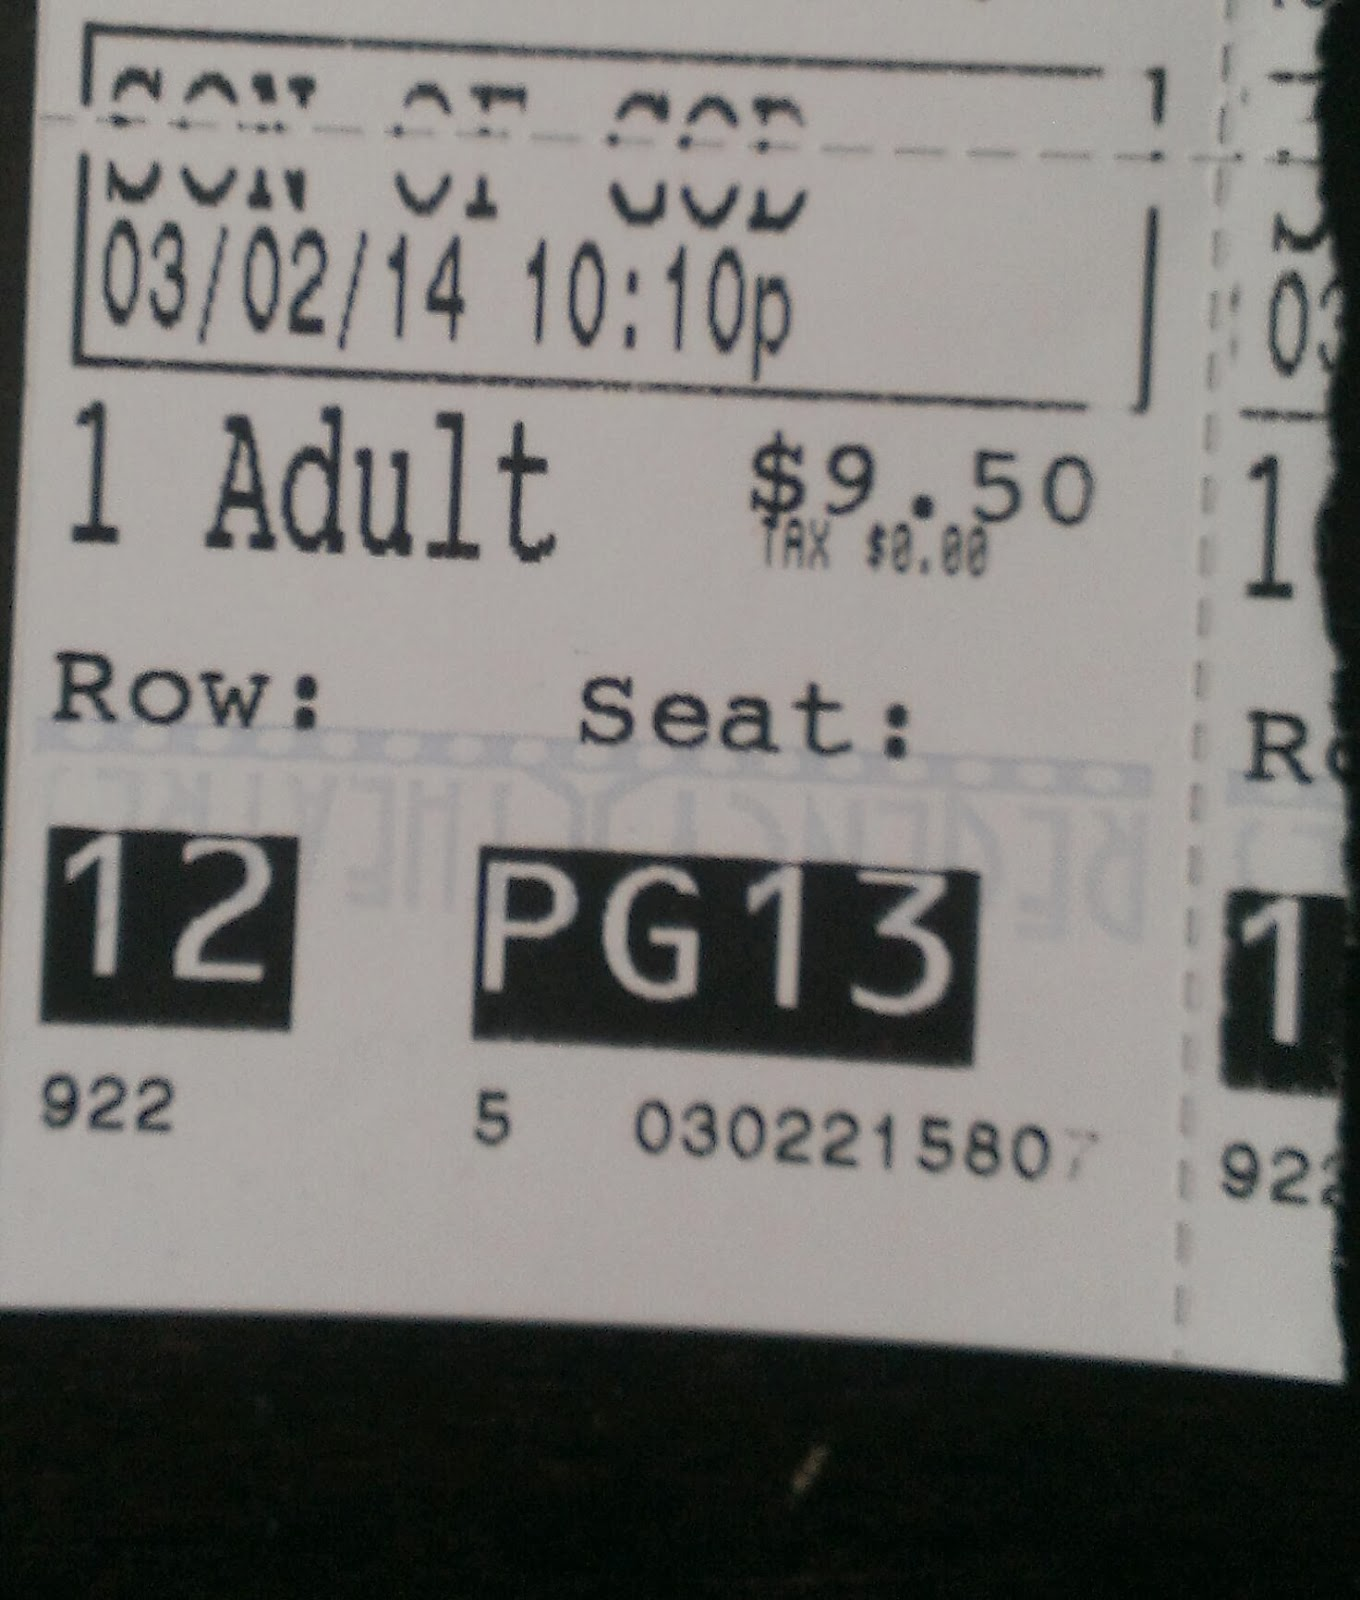 cornelious jordan's son of god movie ticket